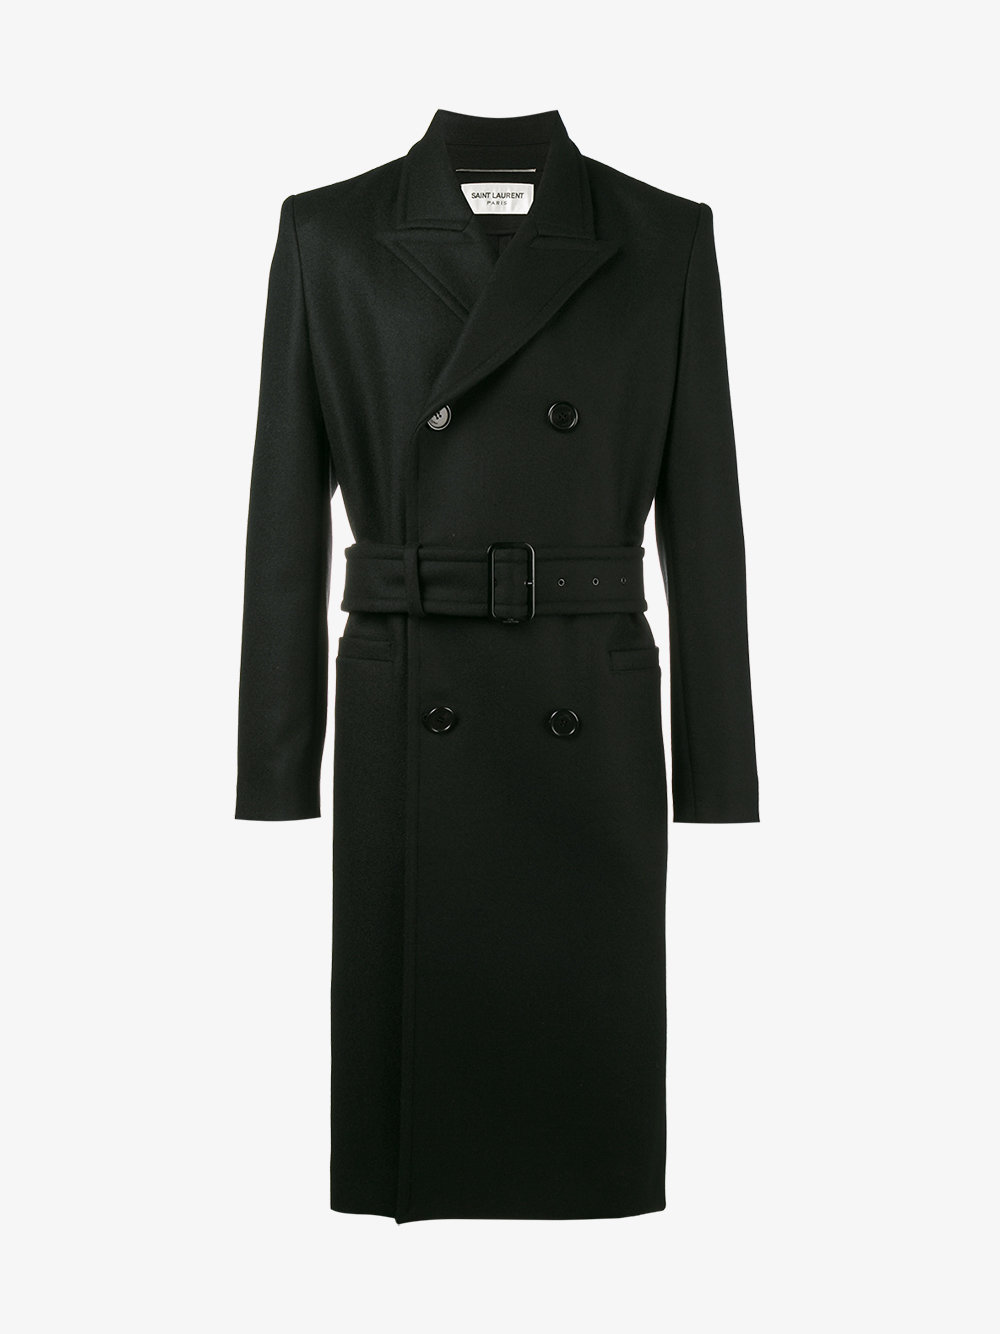 【関税送料込】17FW★SAINT LAURENT★double breasted overcoat